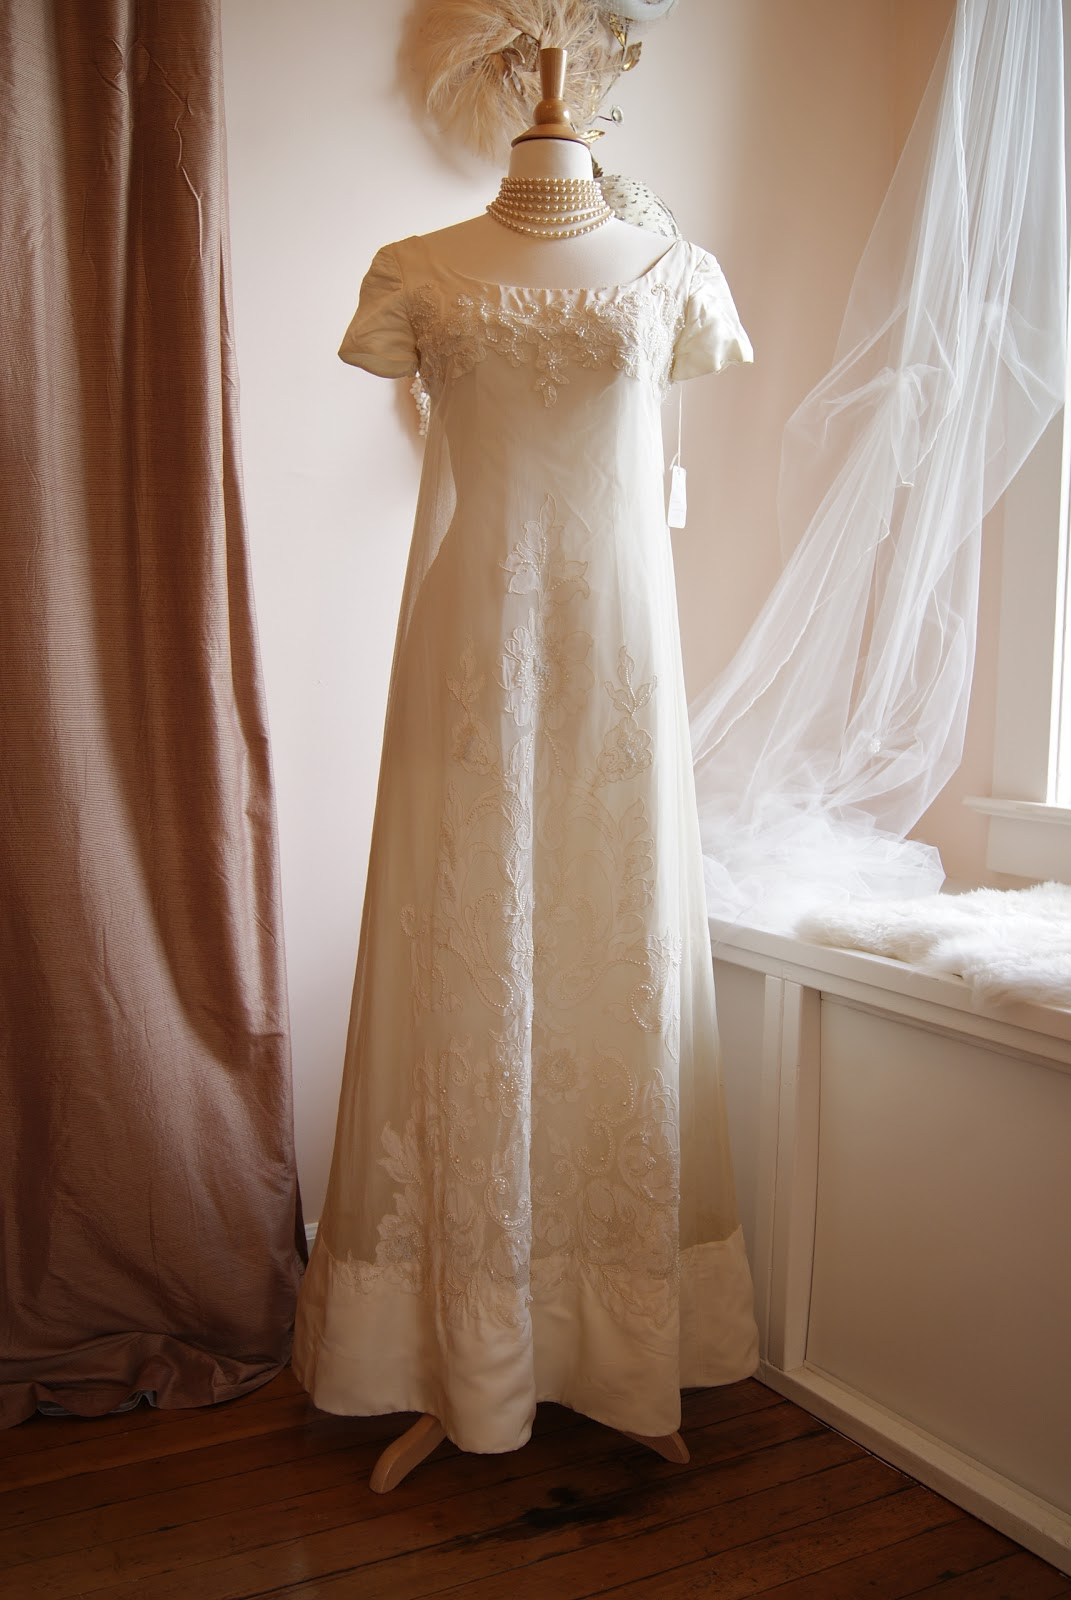 Vintage Wedding Dresses Portland Oregon - Ocodea.com